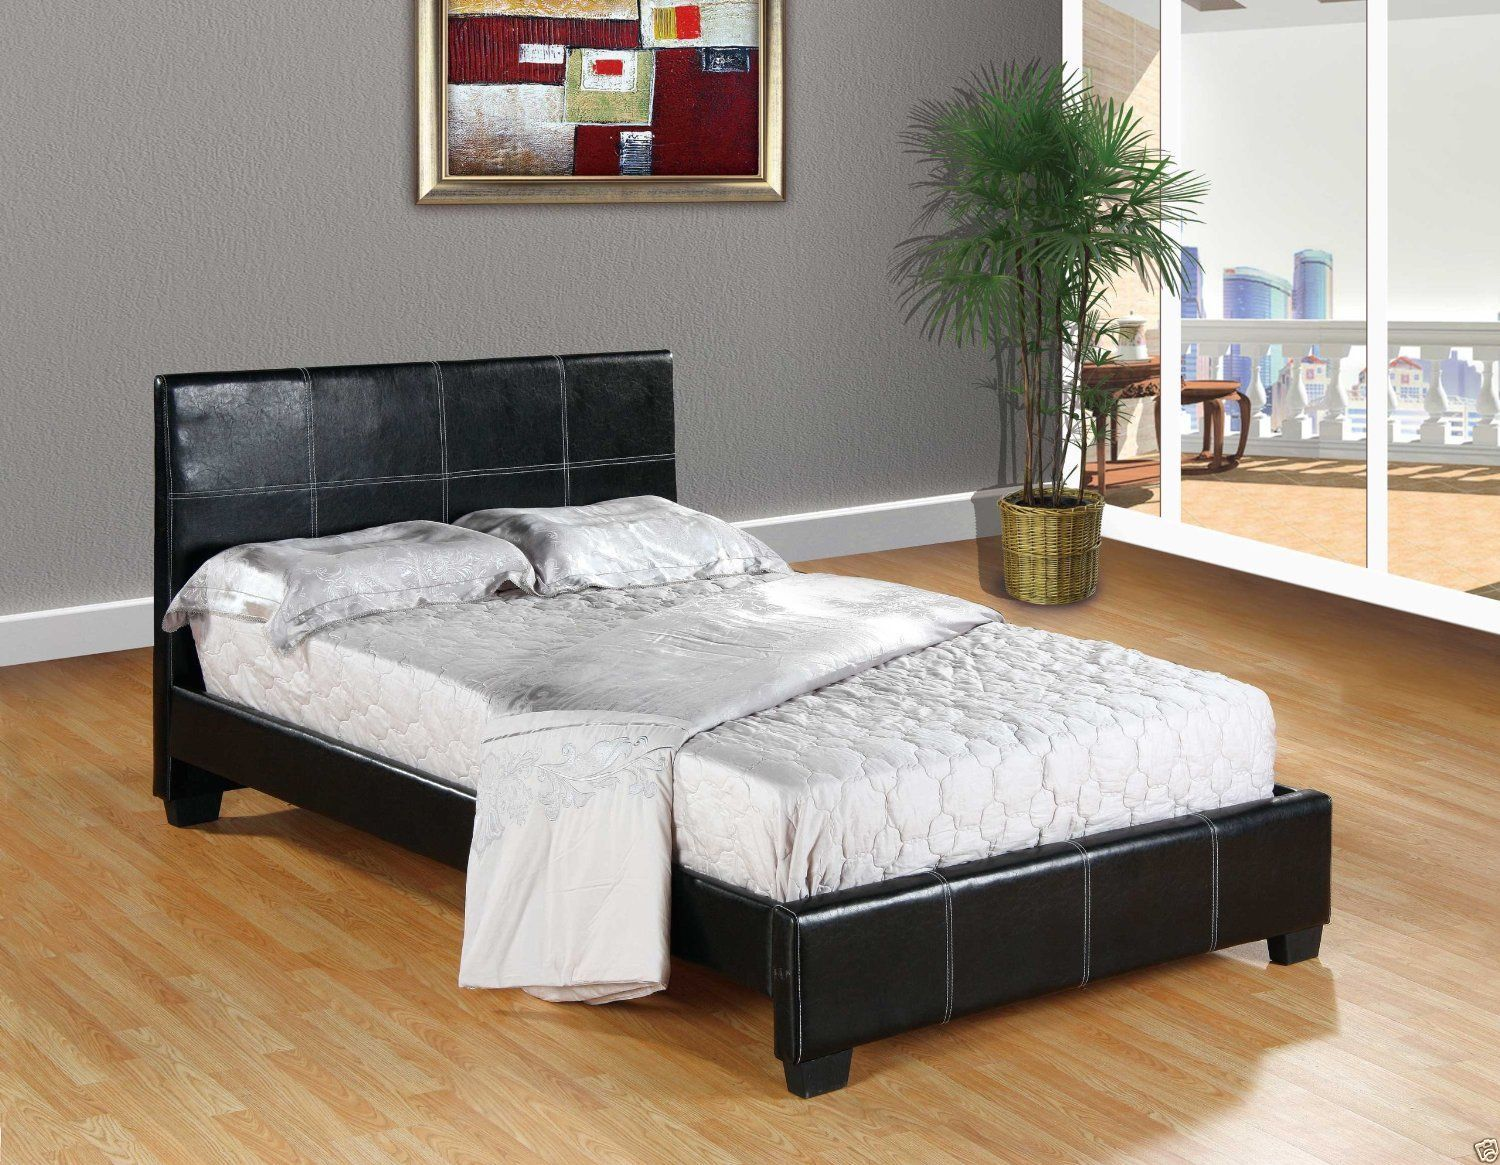 Beds and Bed Frames 175758: Black Faux Leather Queen Size Platform Bed Frame And Slats Modern Home Bedroom New -> BUY IT NOW ONLY: $164 on eBay!